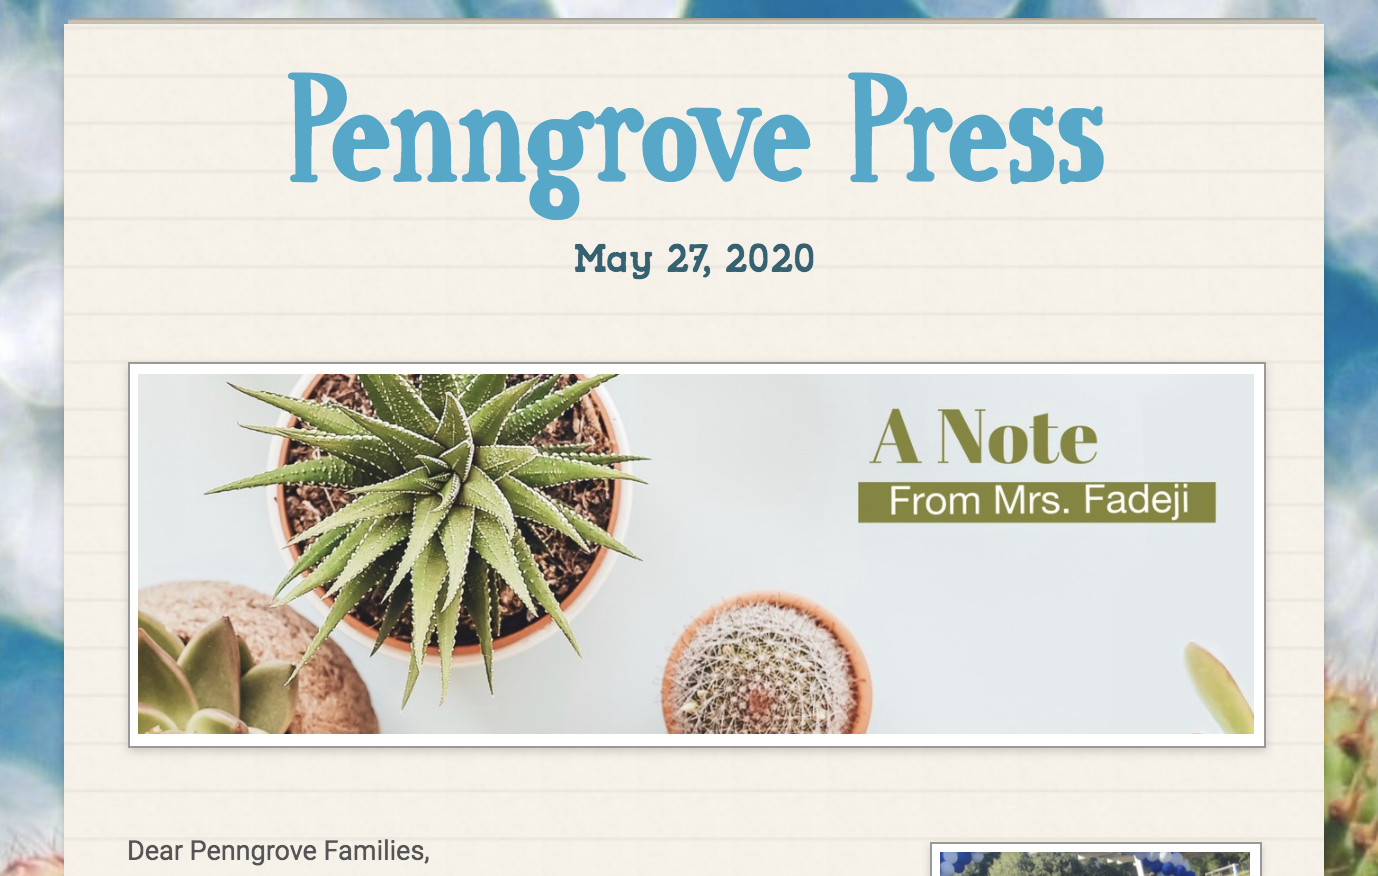 May 27, 2020 Newsletter